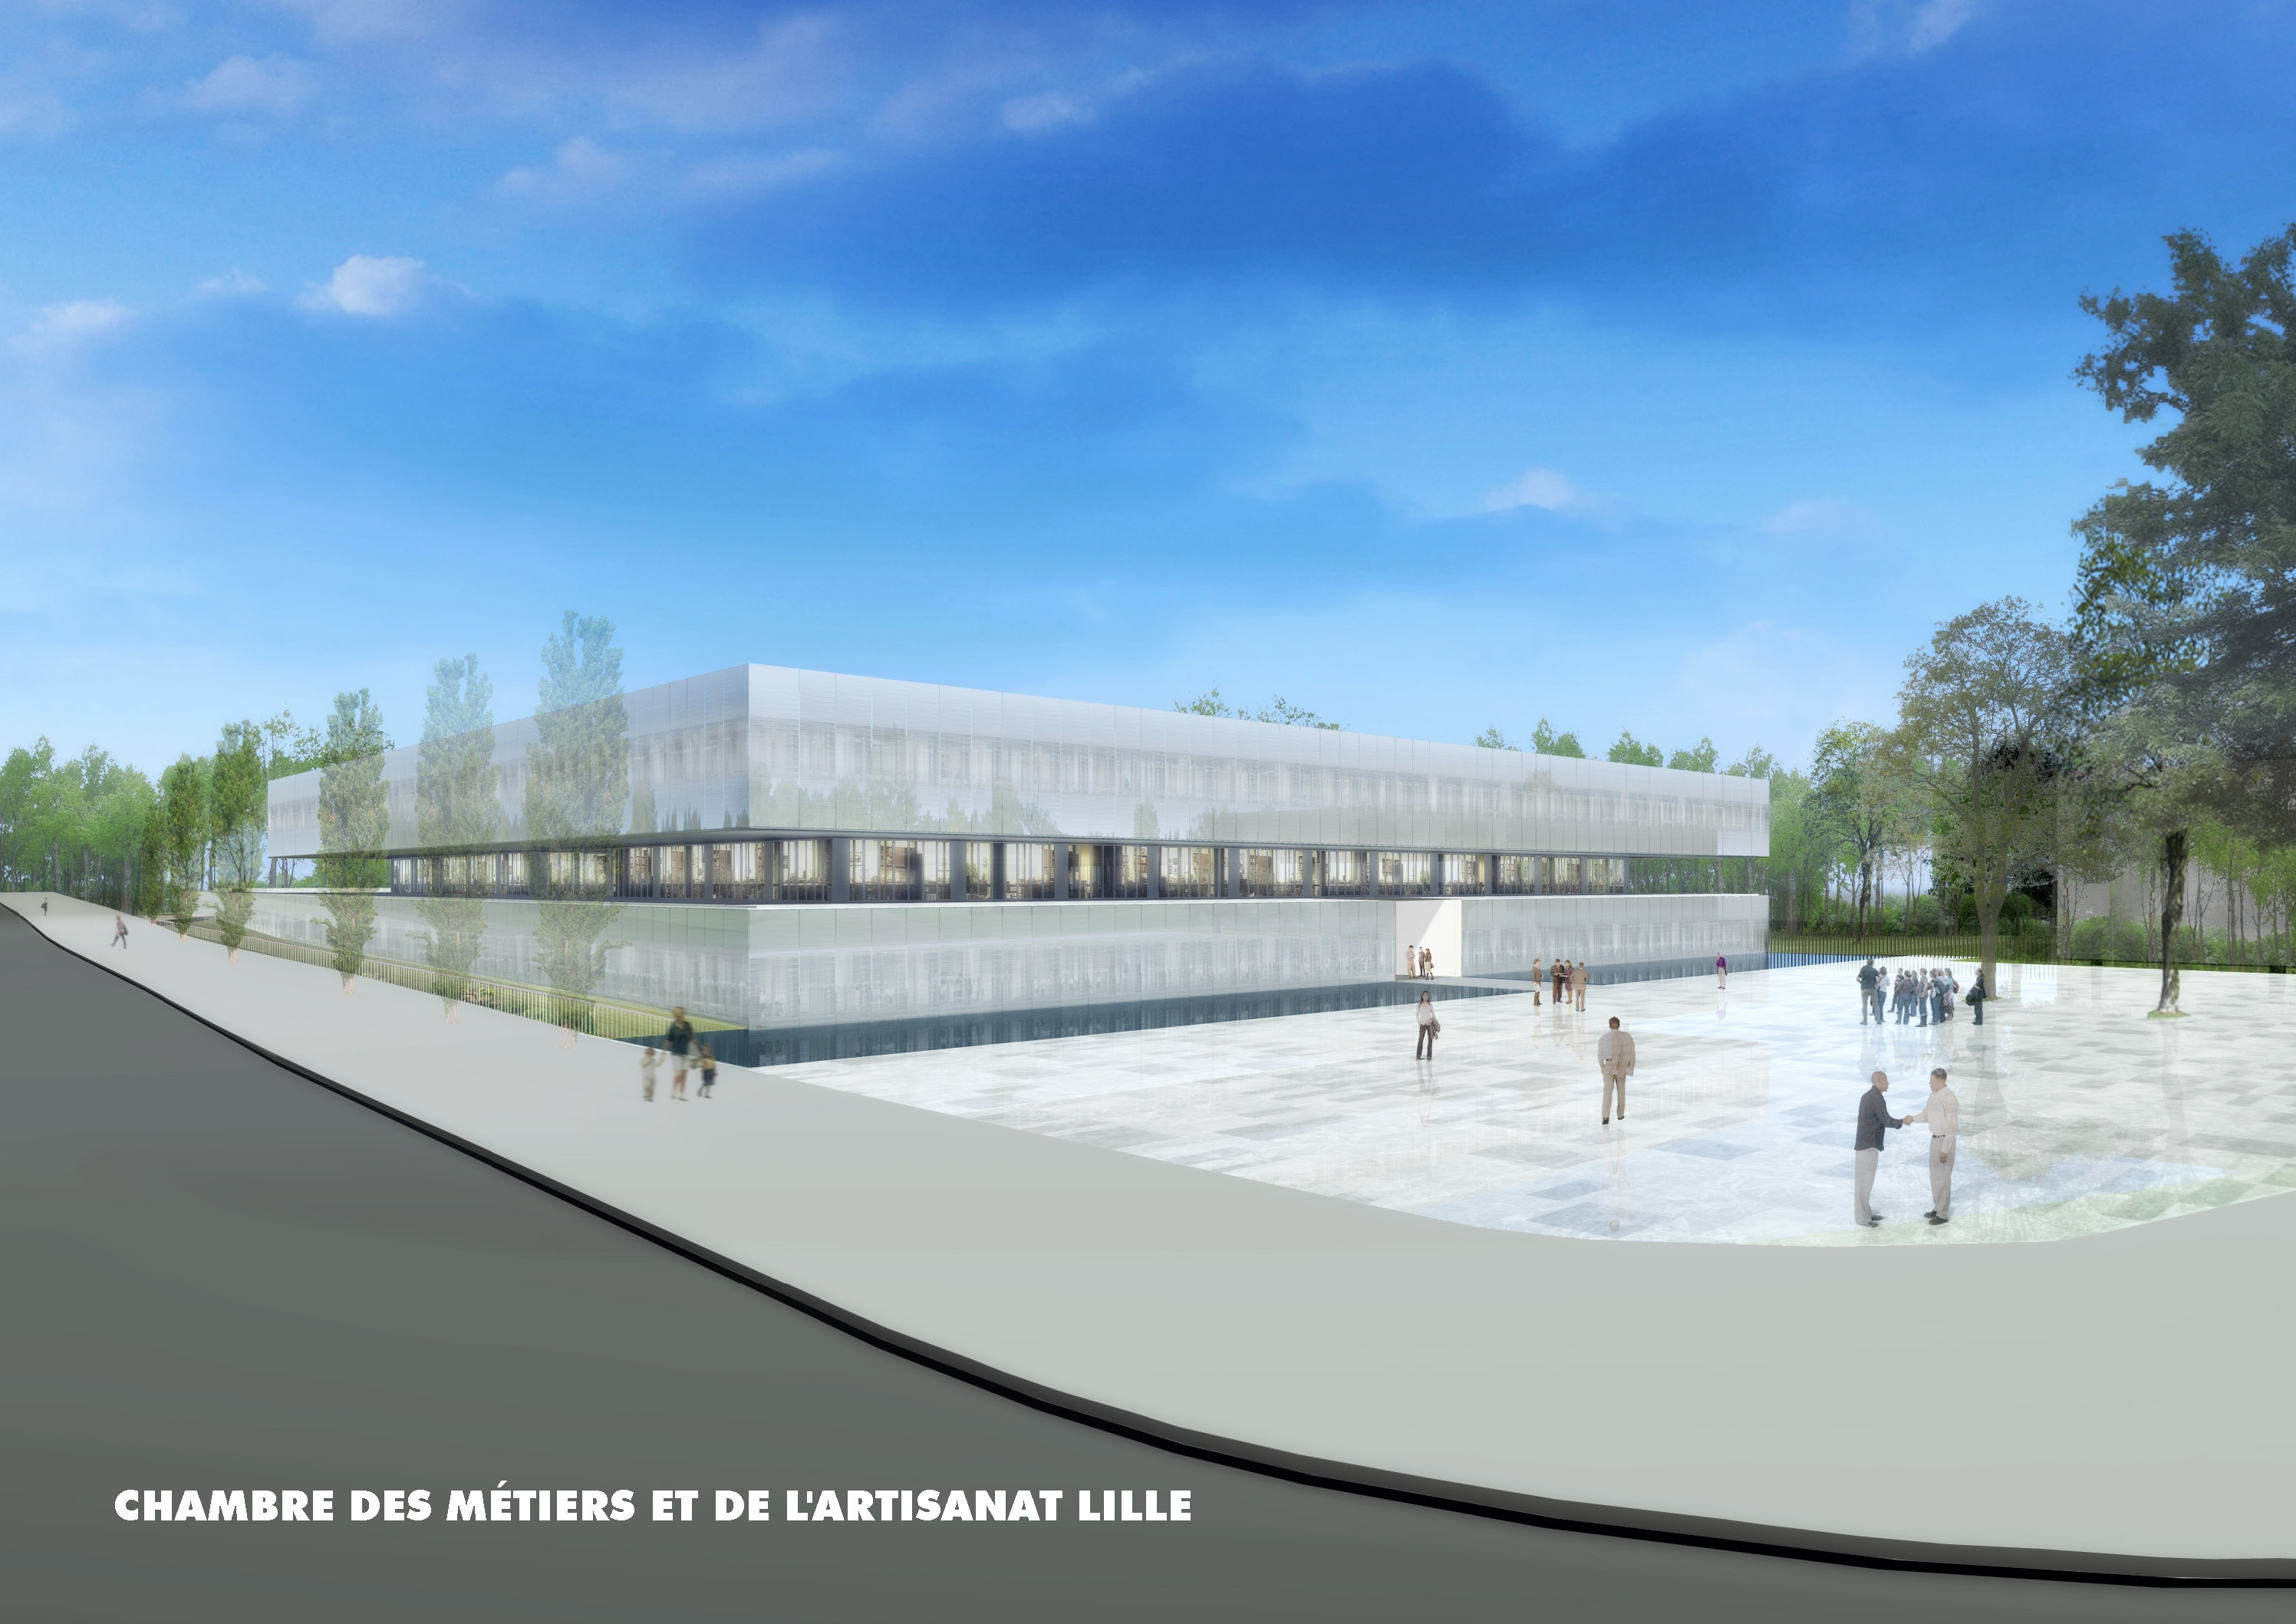 Eurartisanat nos quipements ville de lille adresses for Piscine lille